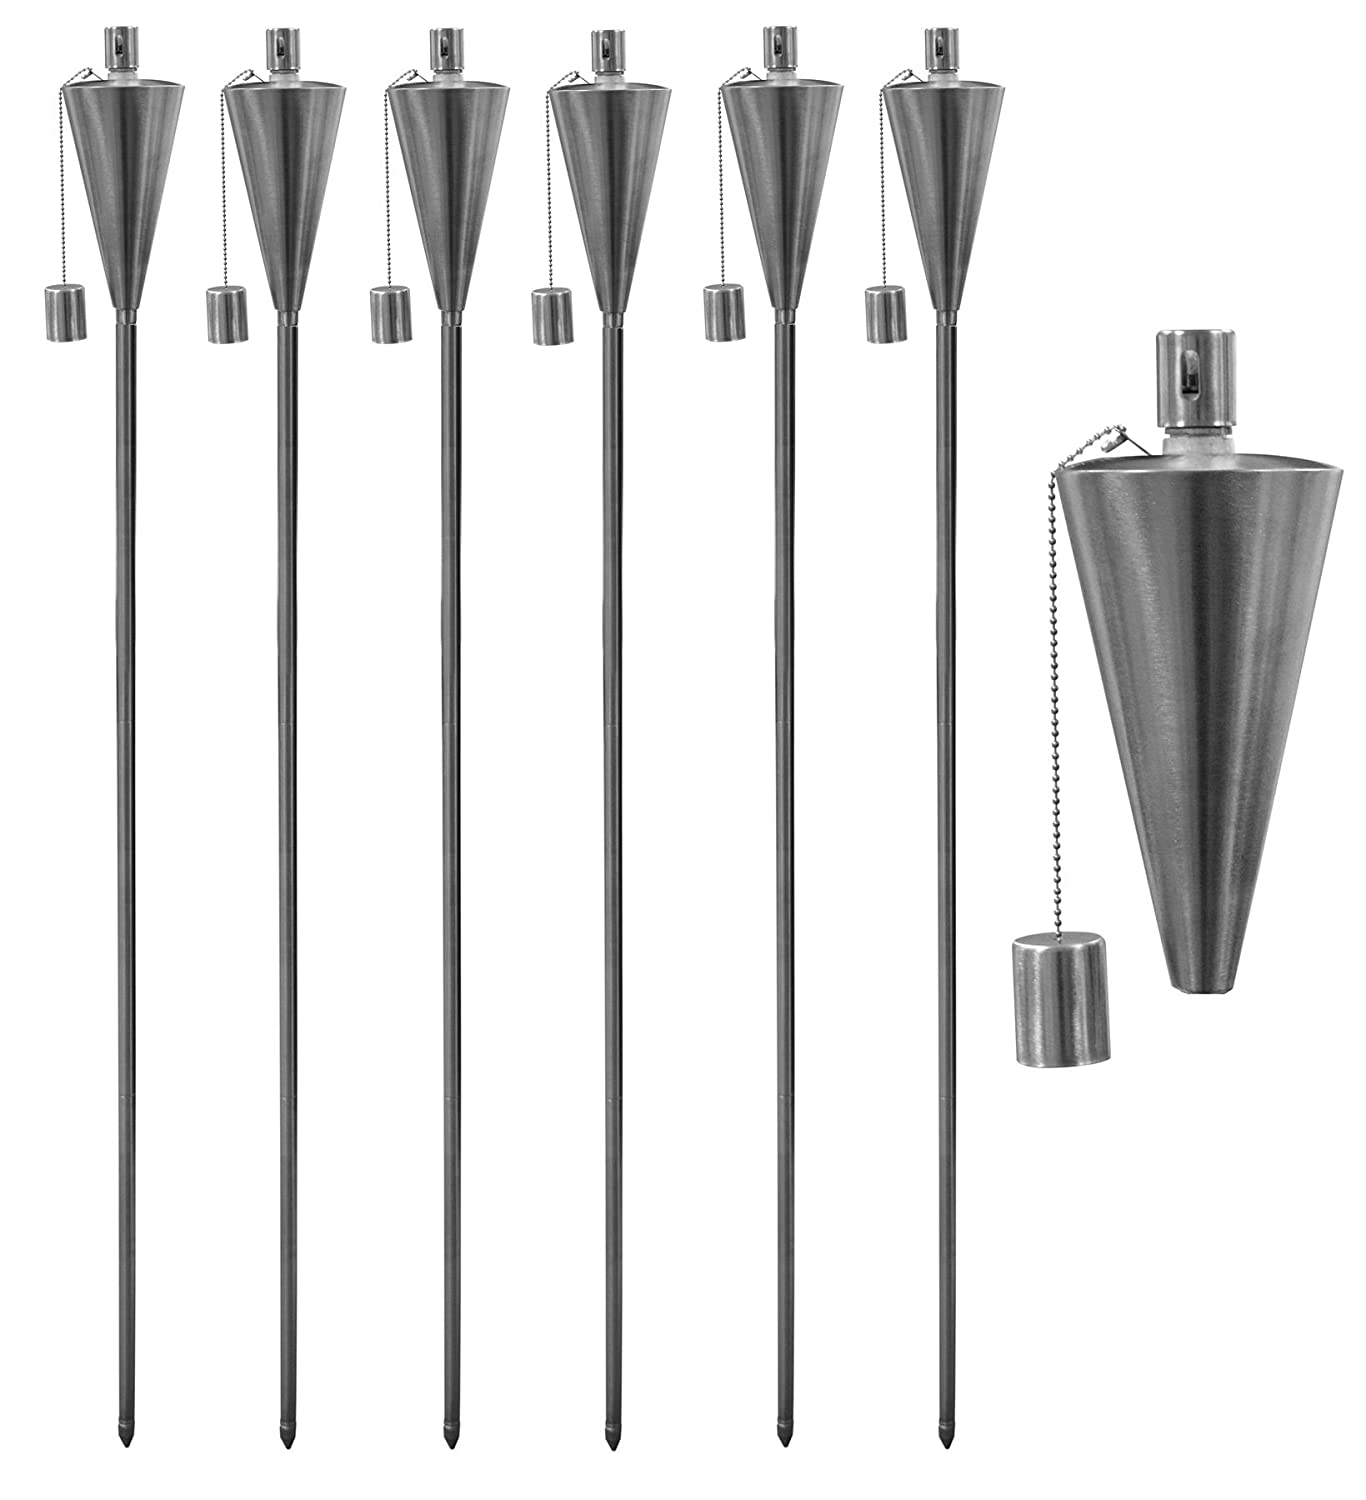 Garden Fire Torch - Oil/Paraffin Lantern - 1460mm Triangle Design - Pack of 6 Harbour Housewares